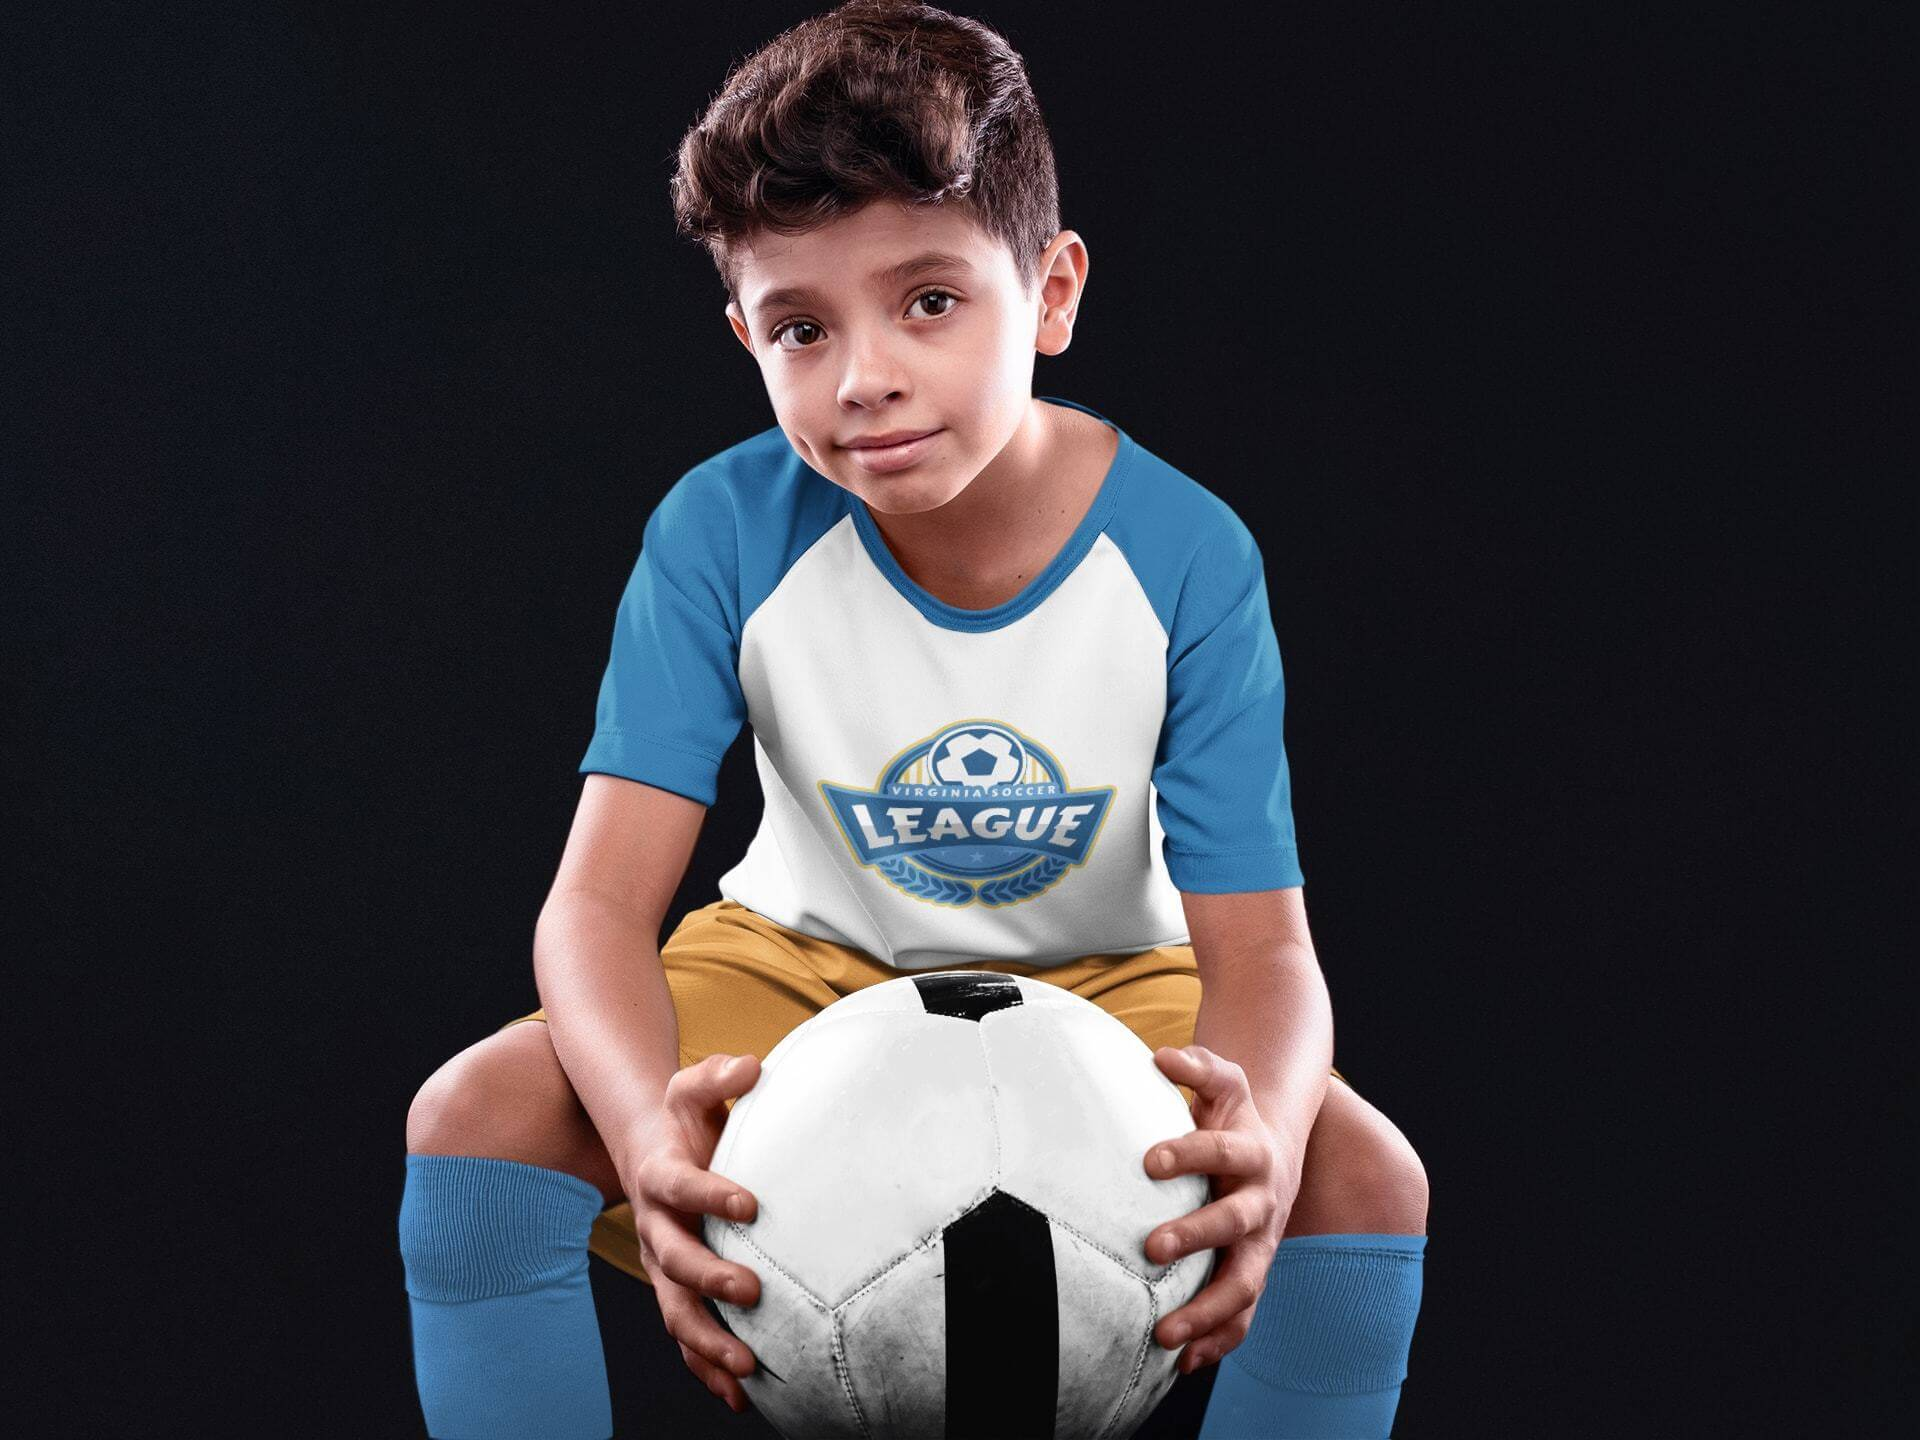 Where to Order Custom Soccer Jerseys The Team Will Love